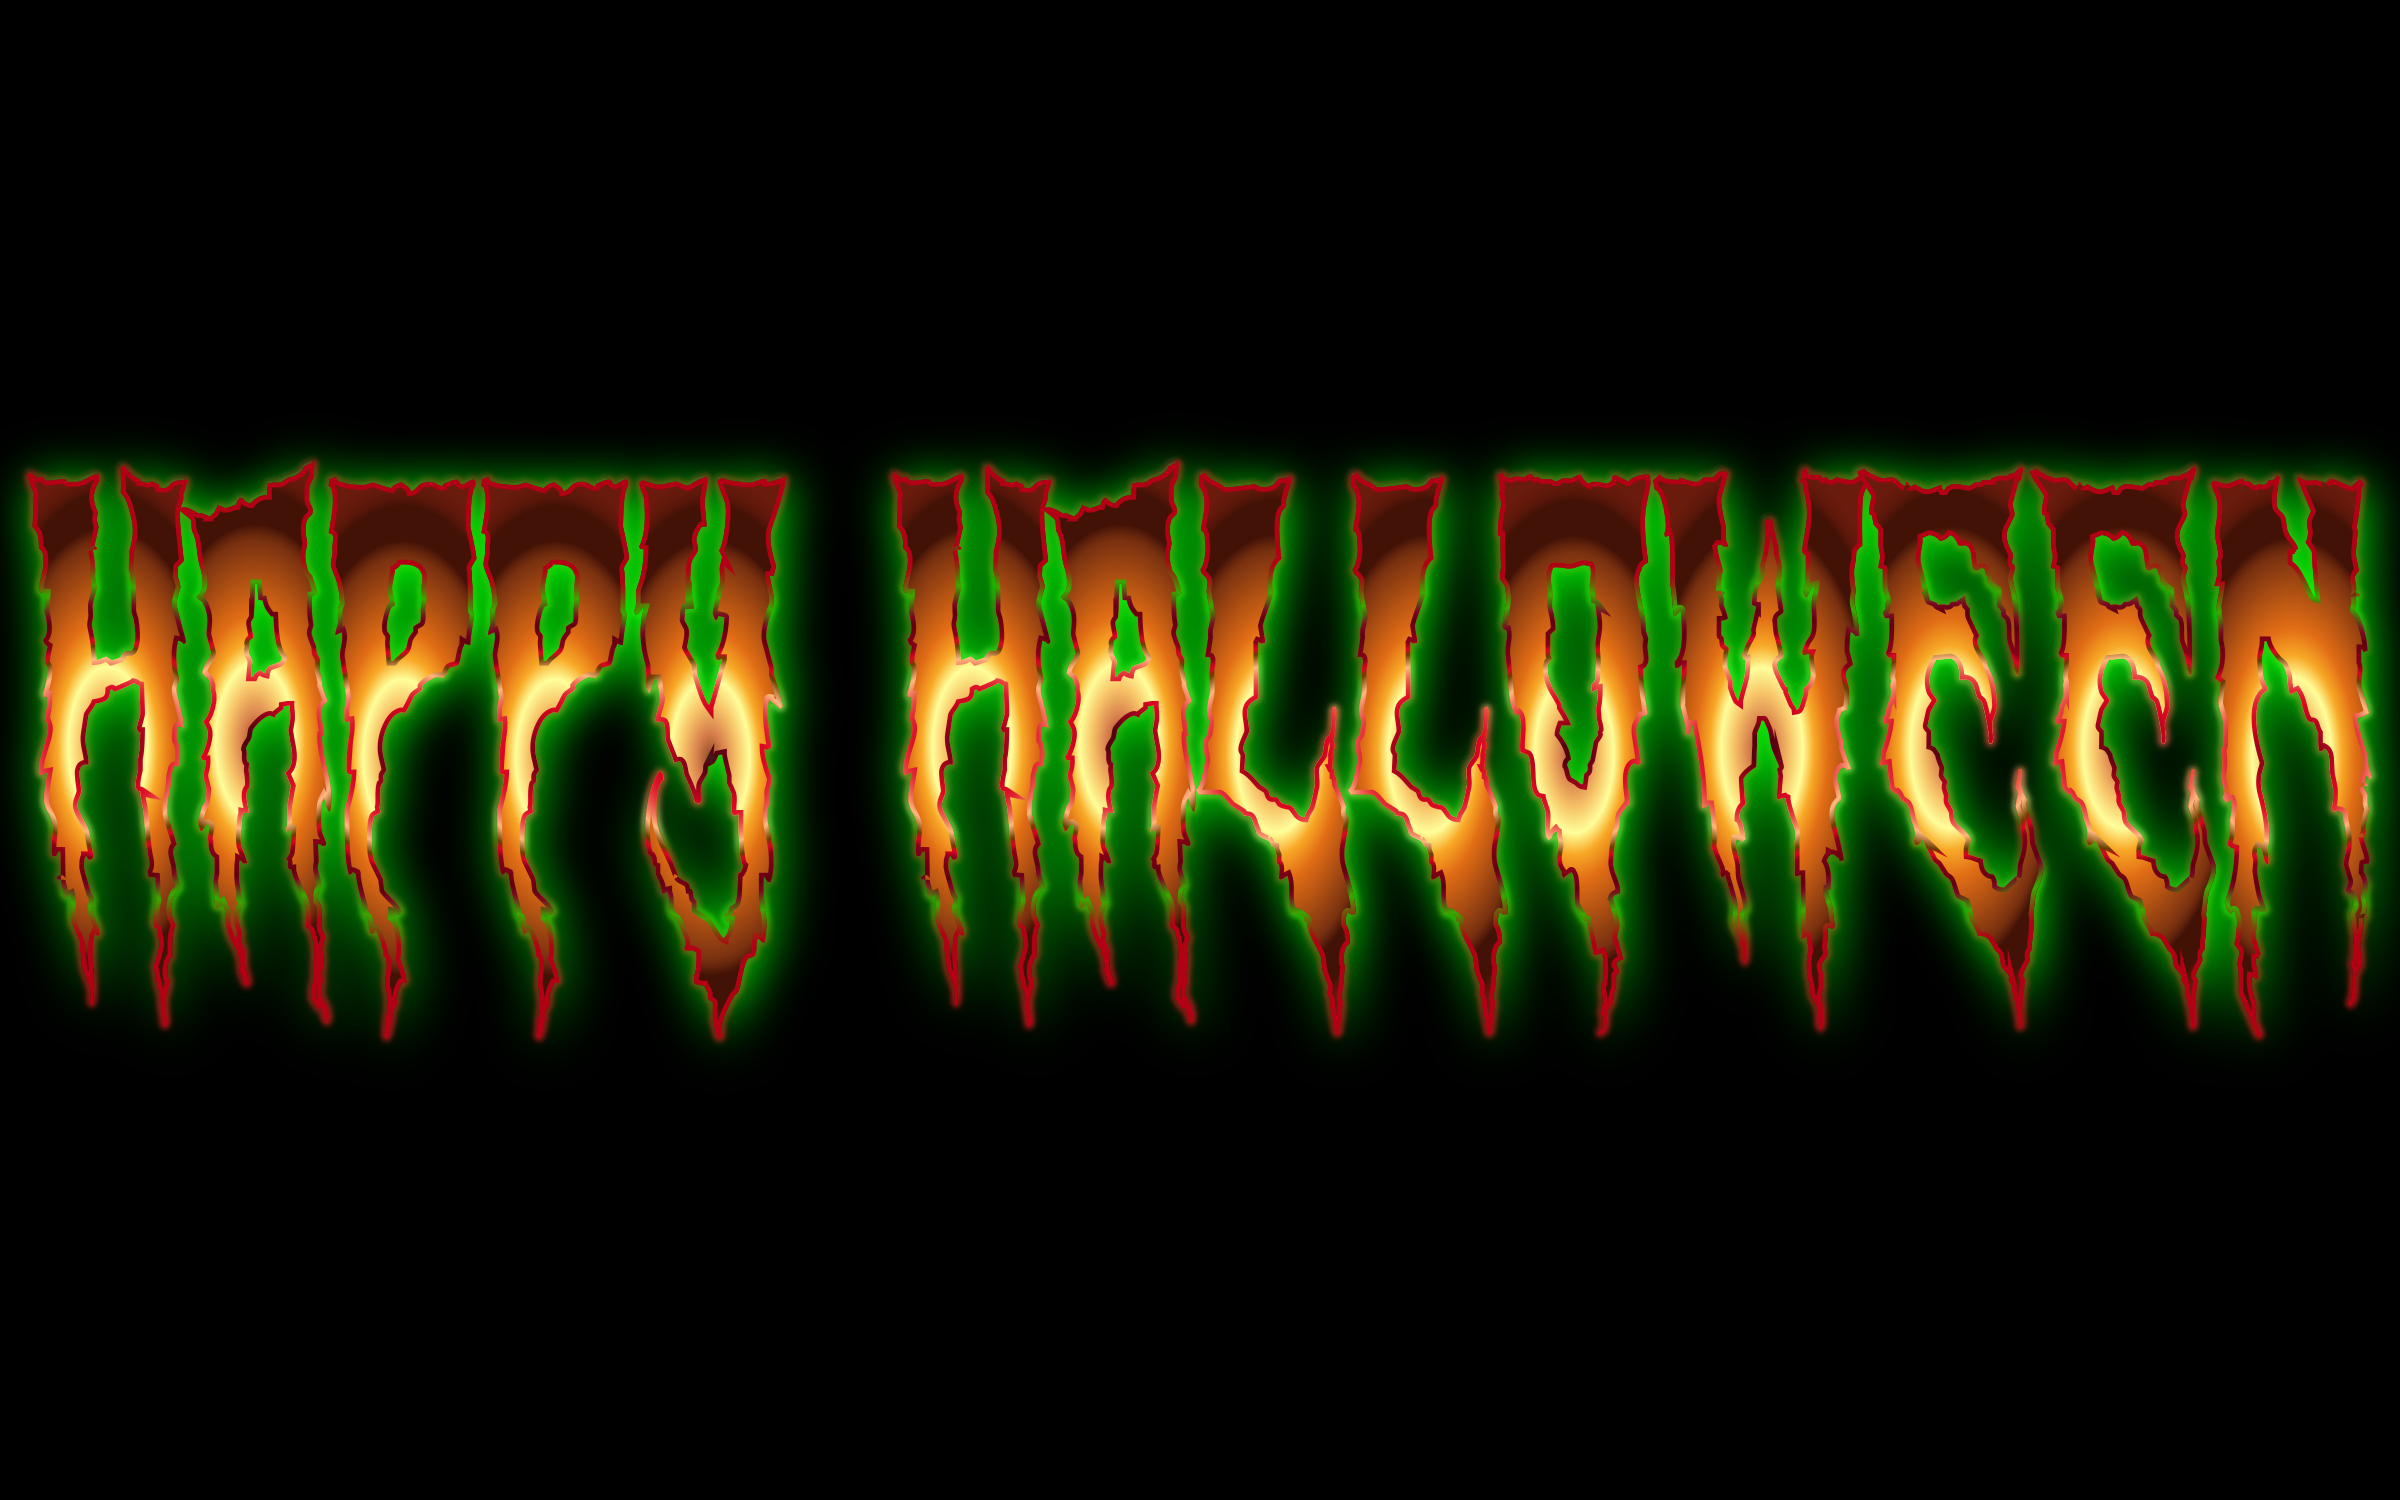 Happy Halloween Typography Enhanced 3 by GDJ